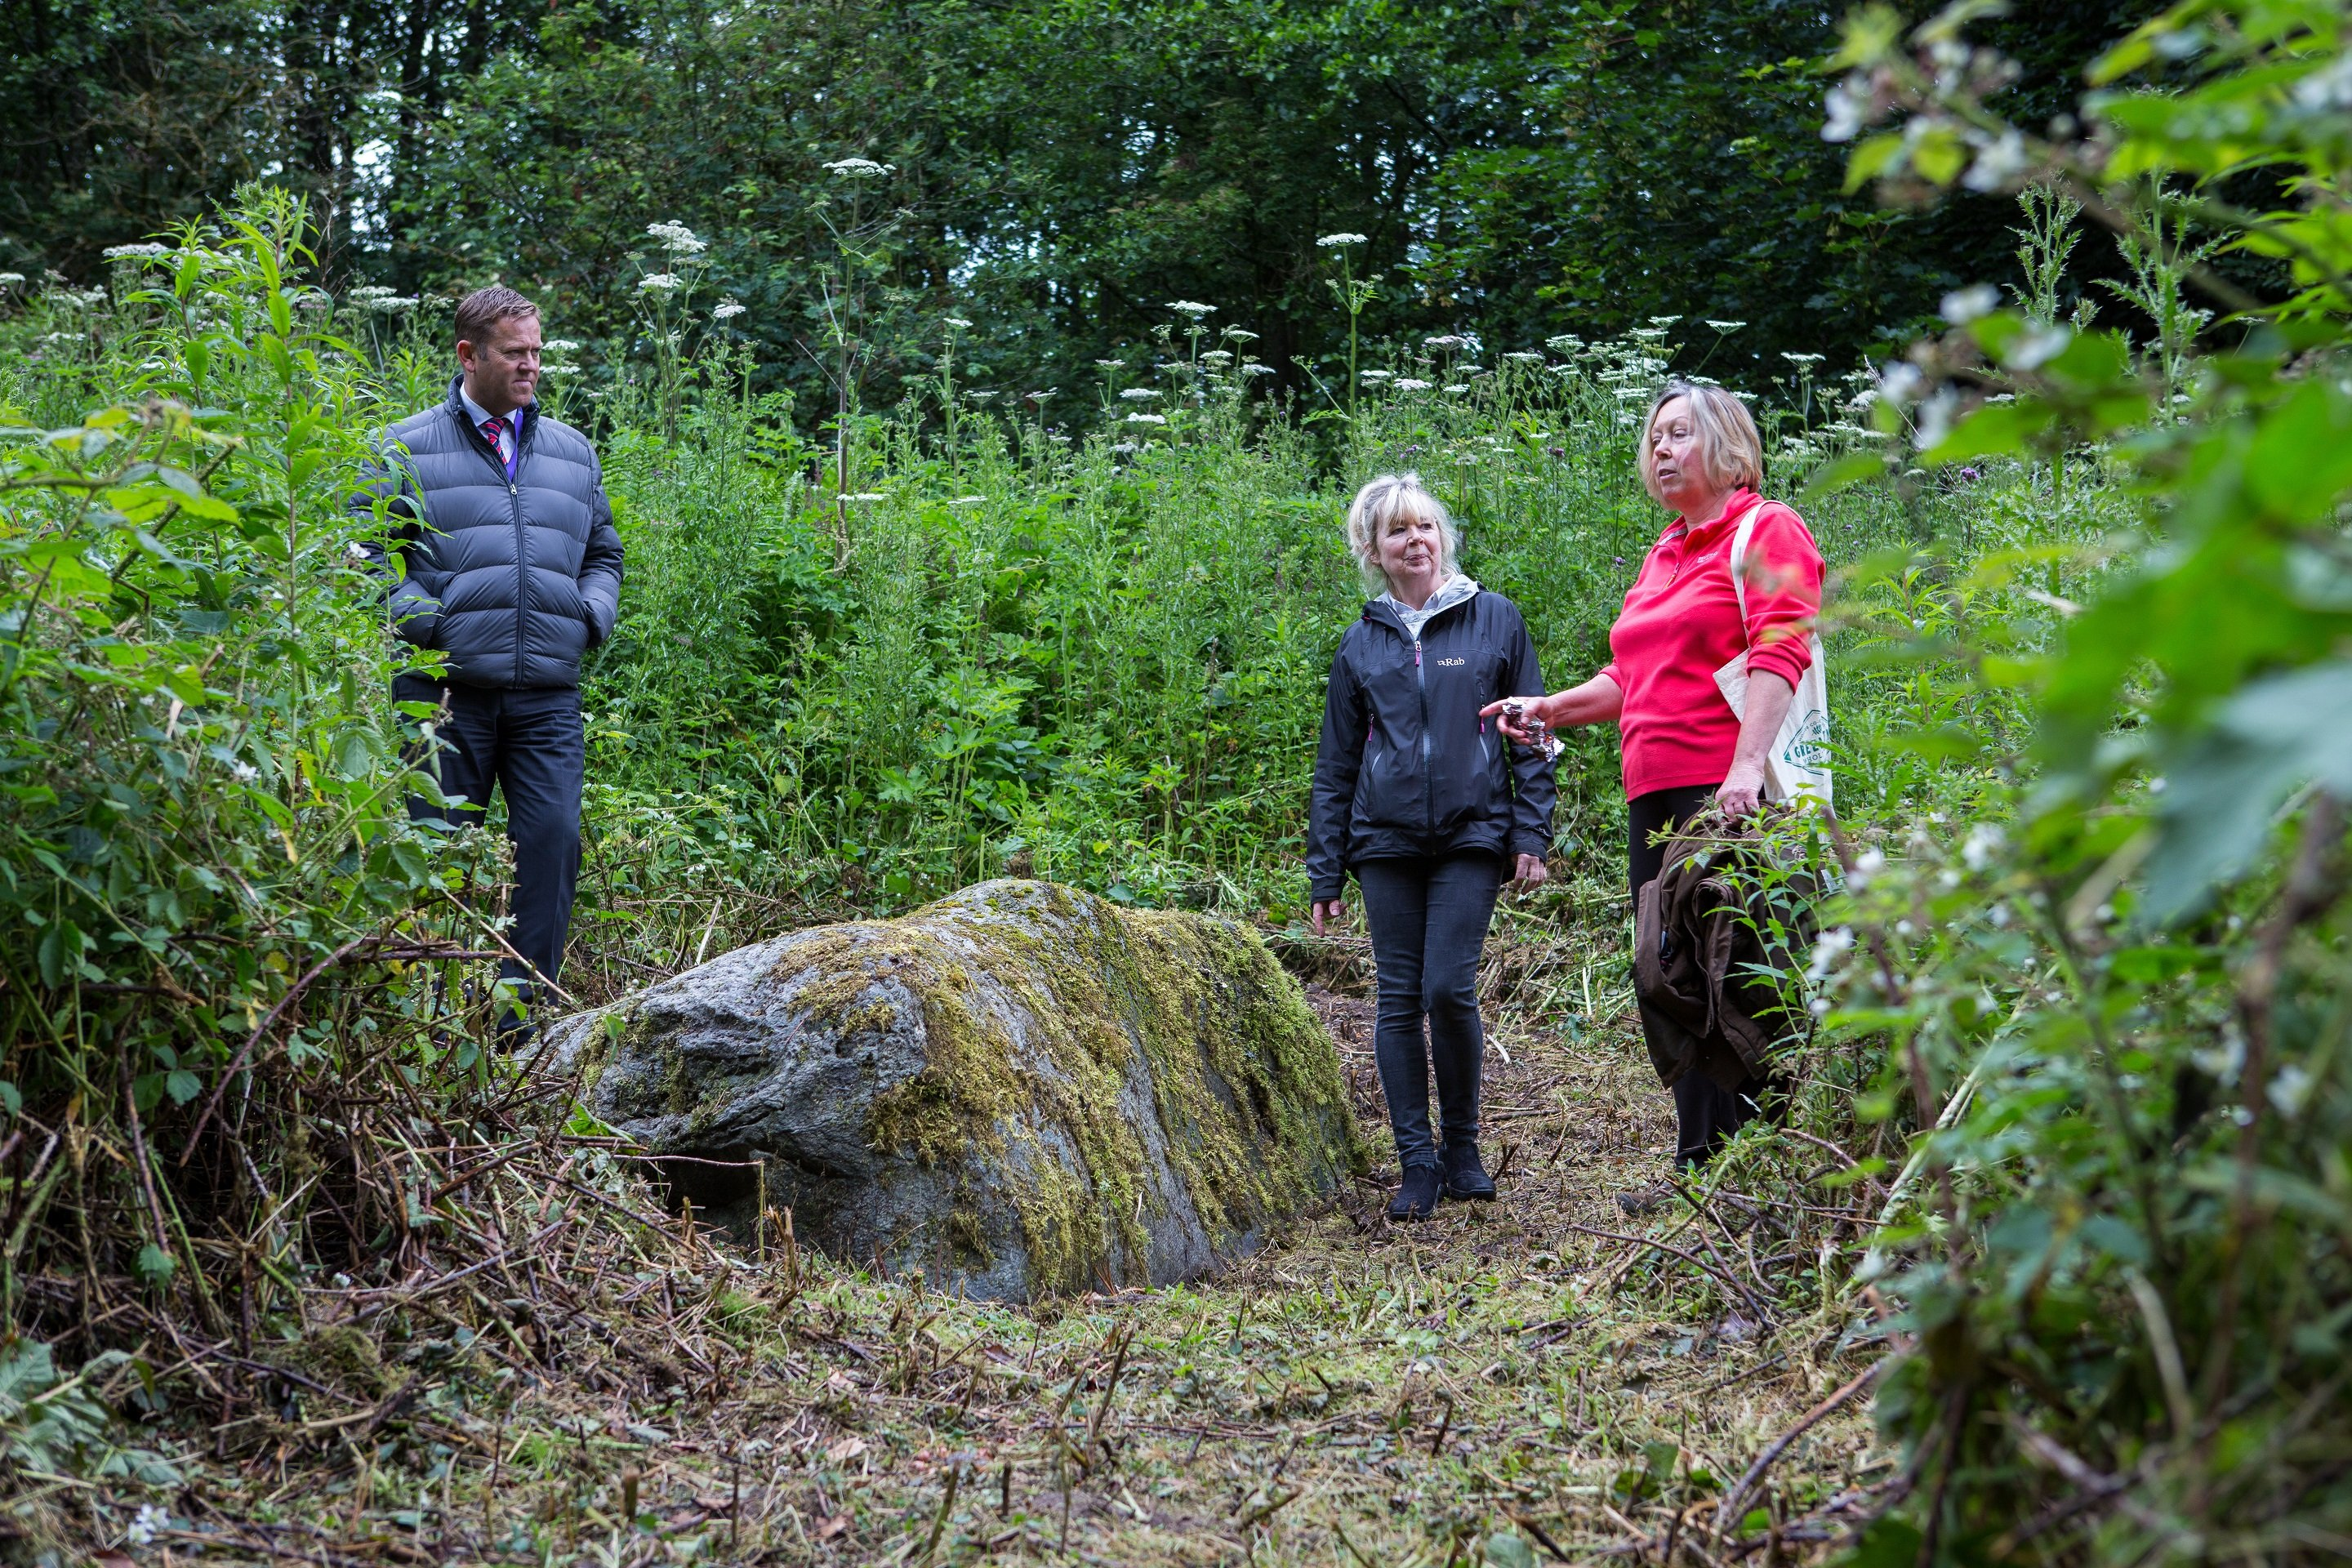 Julia Howe and Jane Courtney, Auchterarder Core Paths Working Group, and Brian Cargill, PKC Traffic Services, at the Granny Stane just off the Provost Walk ©PKCT